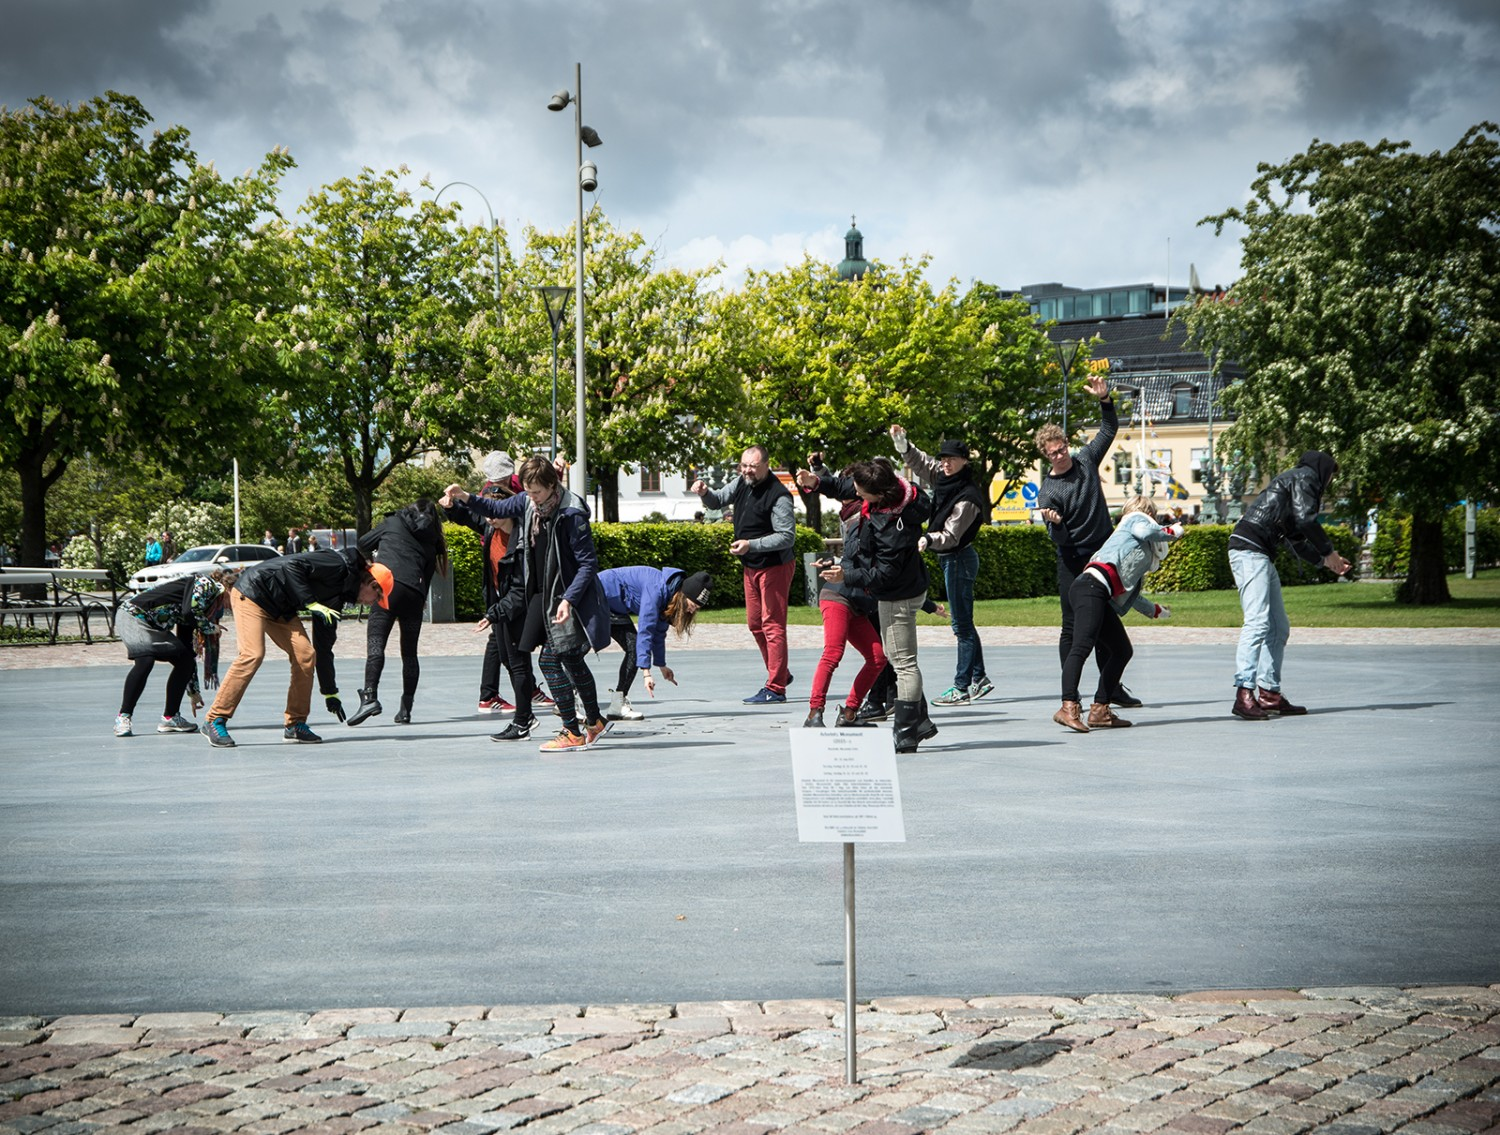 A group of people in an open space All are leaning in various directions.